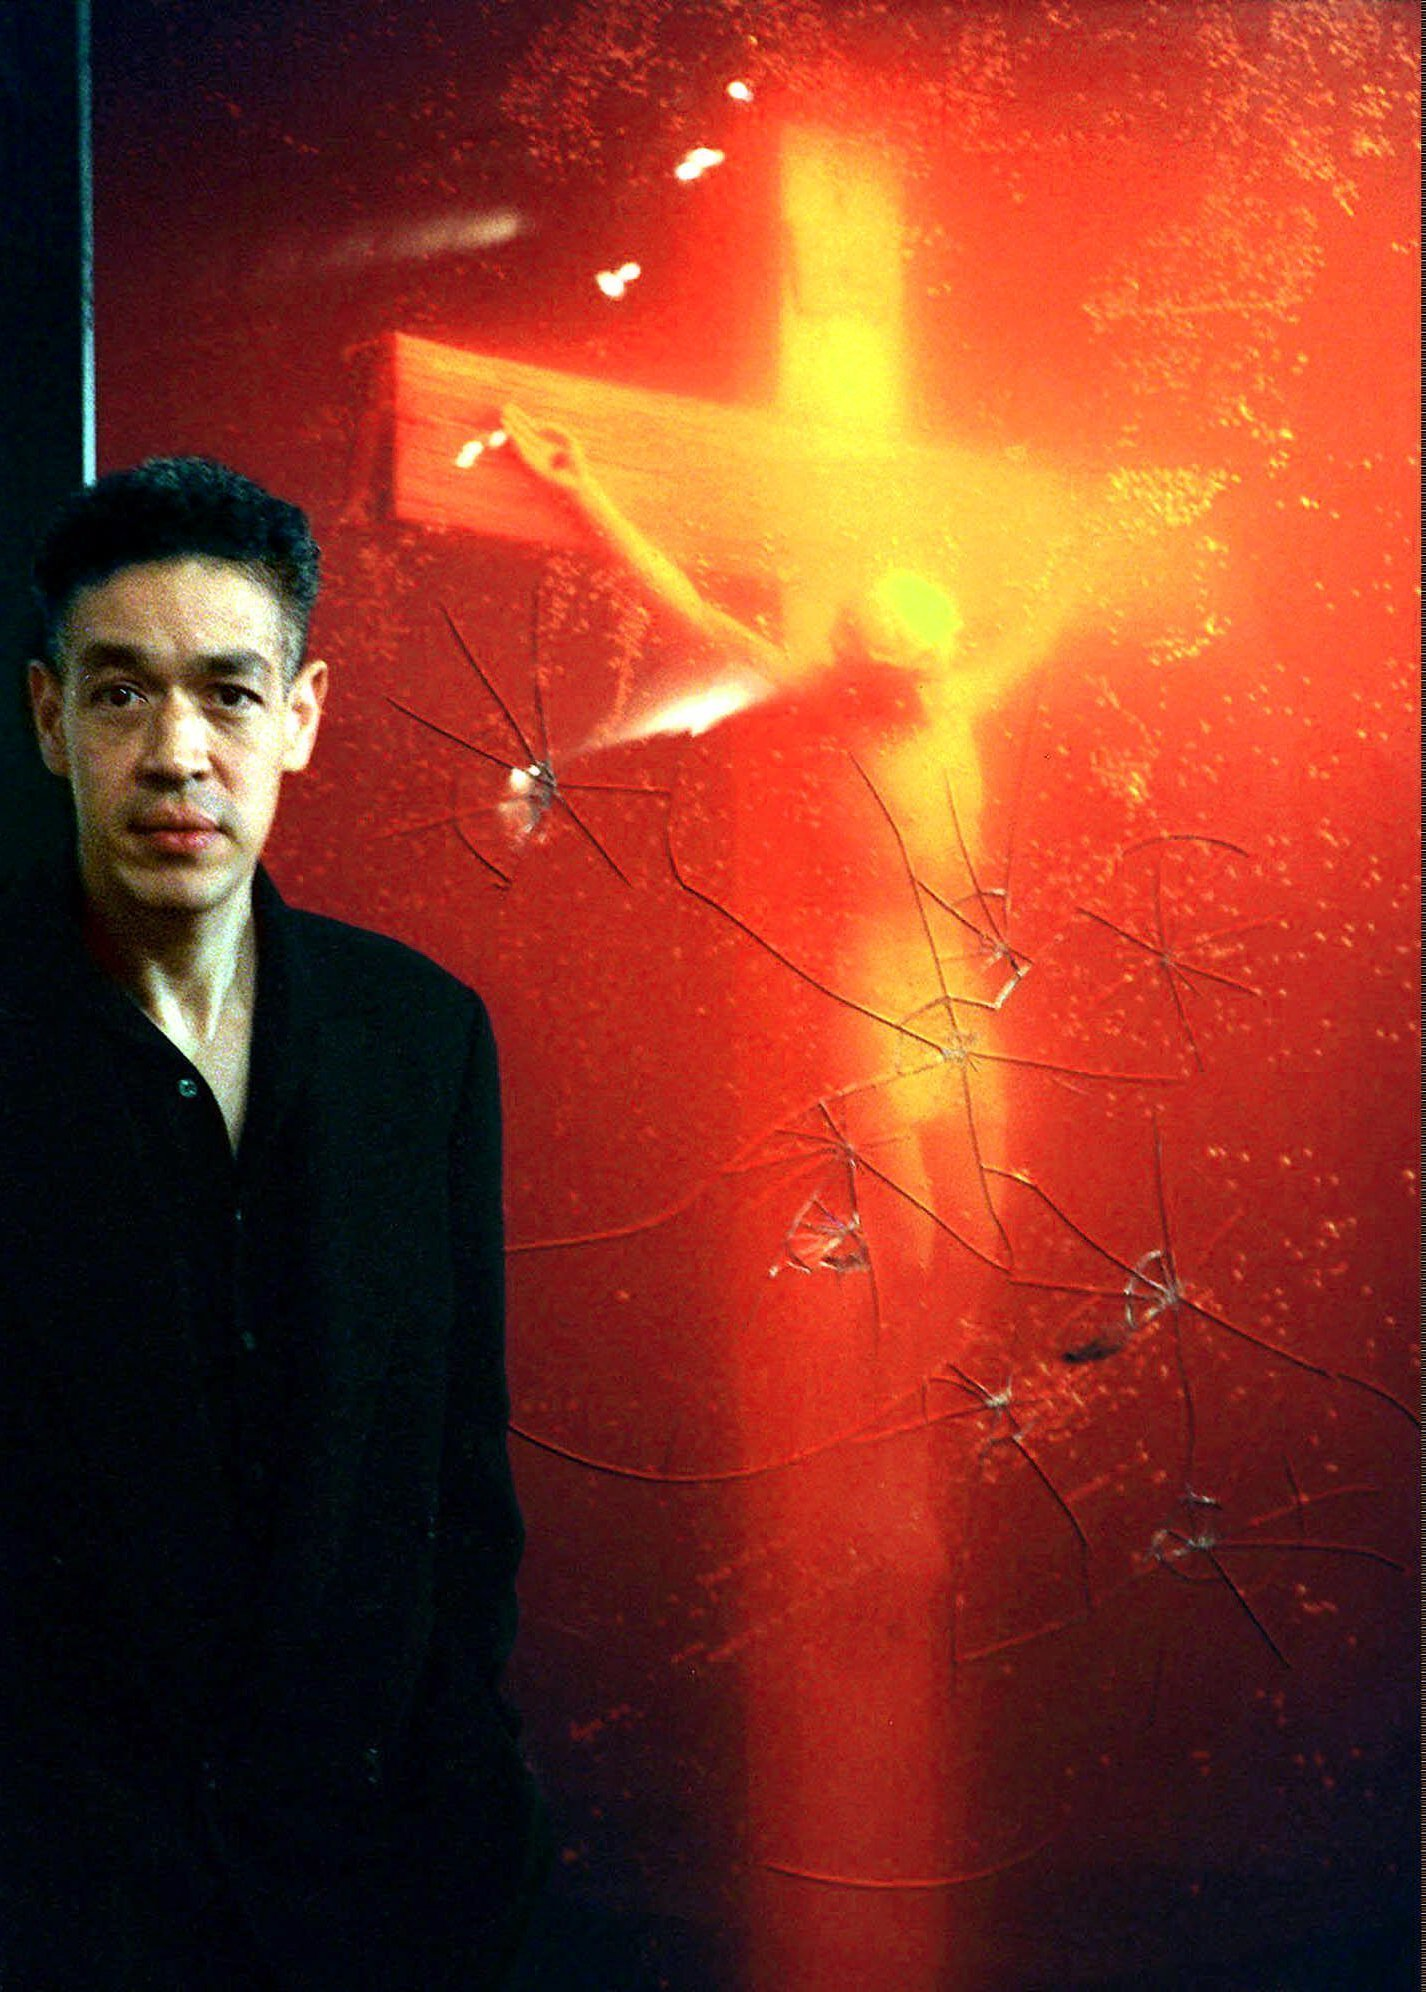 Reserve, Mapplethorpe piss christ something